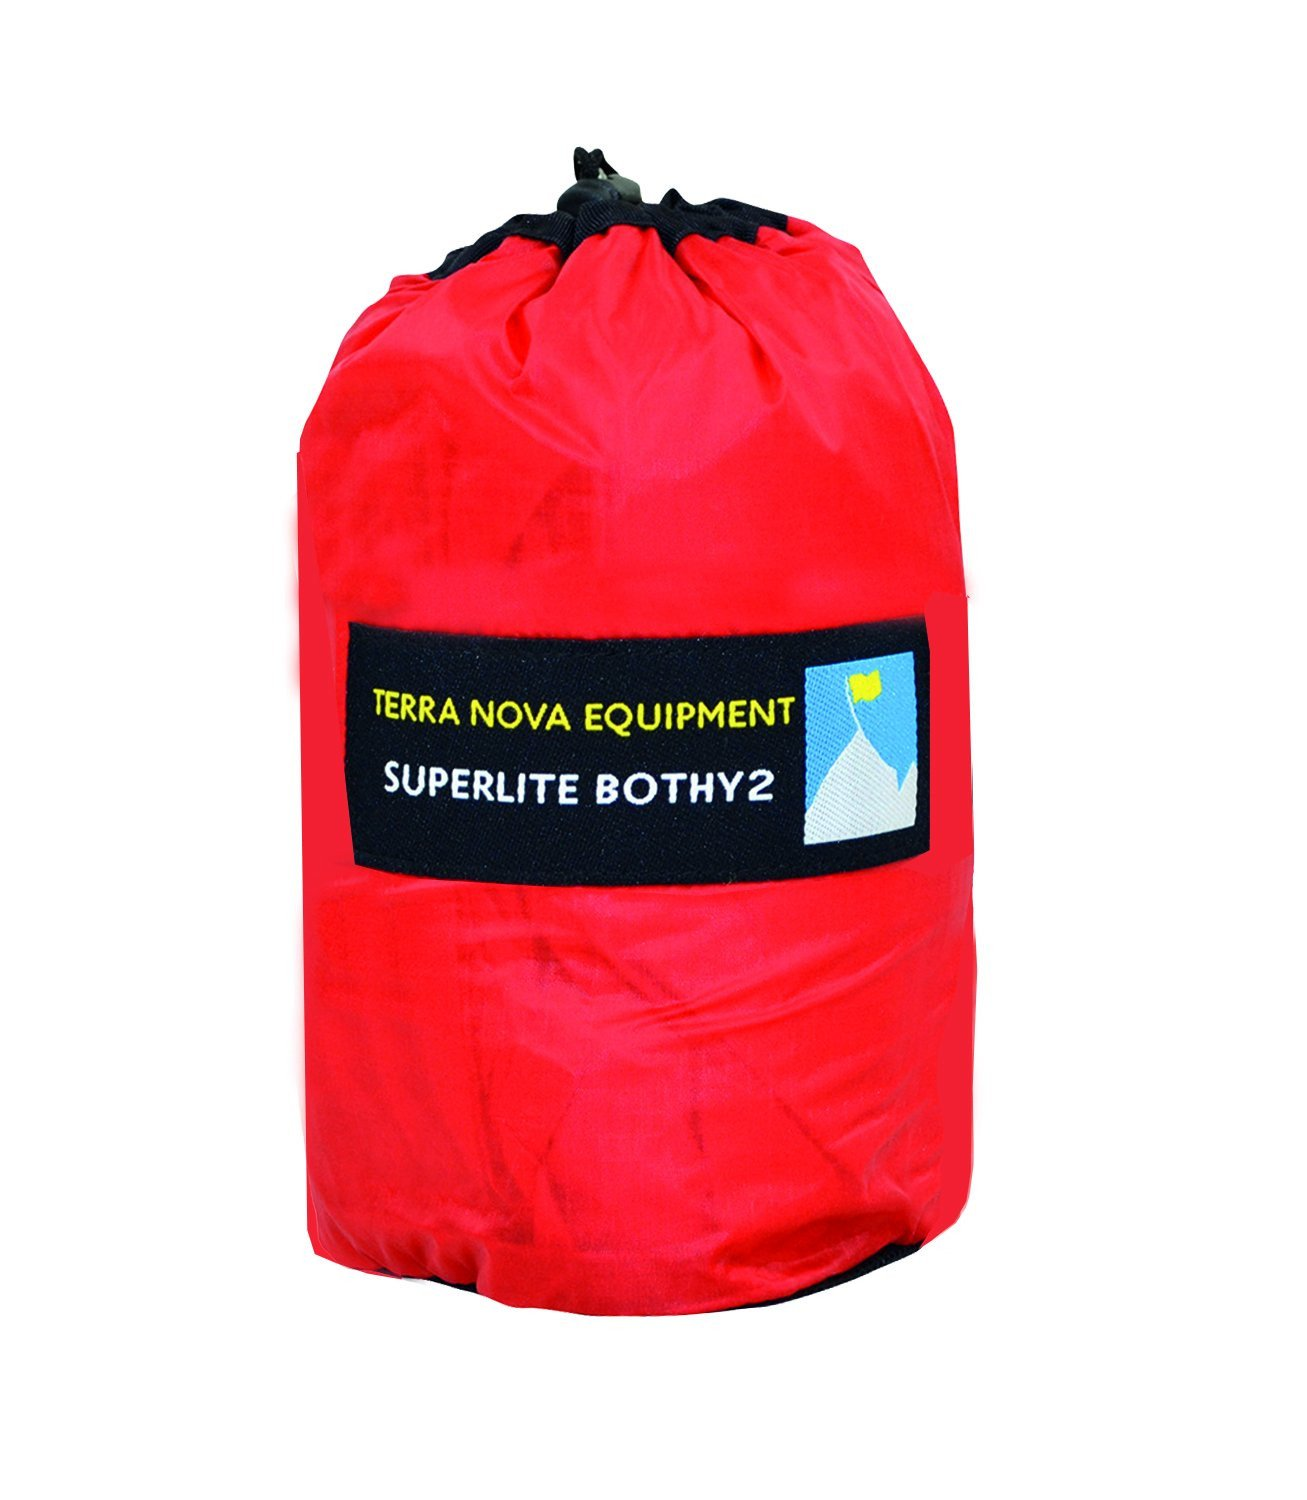 Terra Nova Superlite Bothy 2, an emergency survival shelter in a red stuff sack